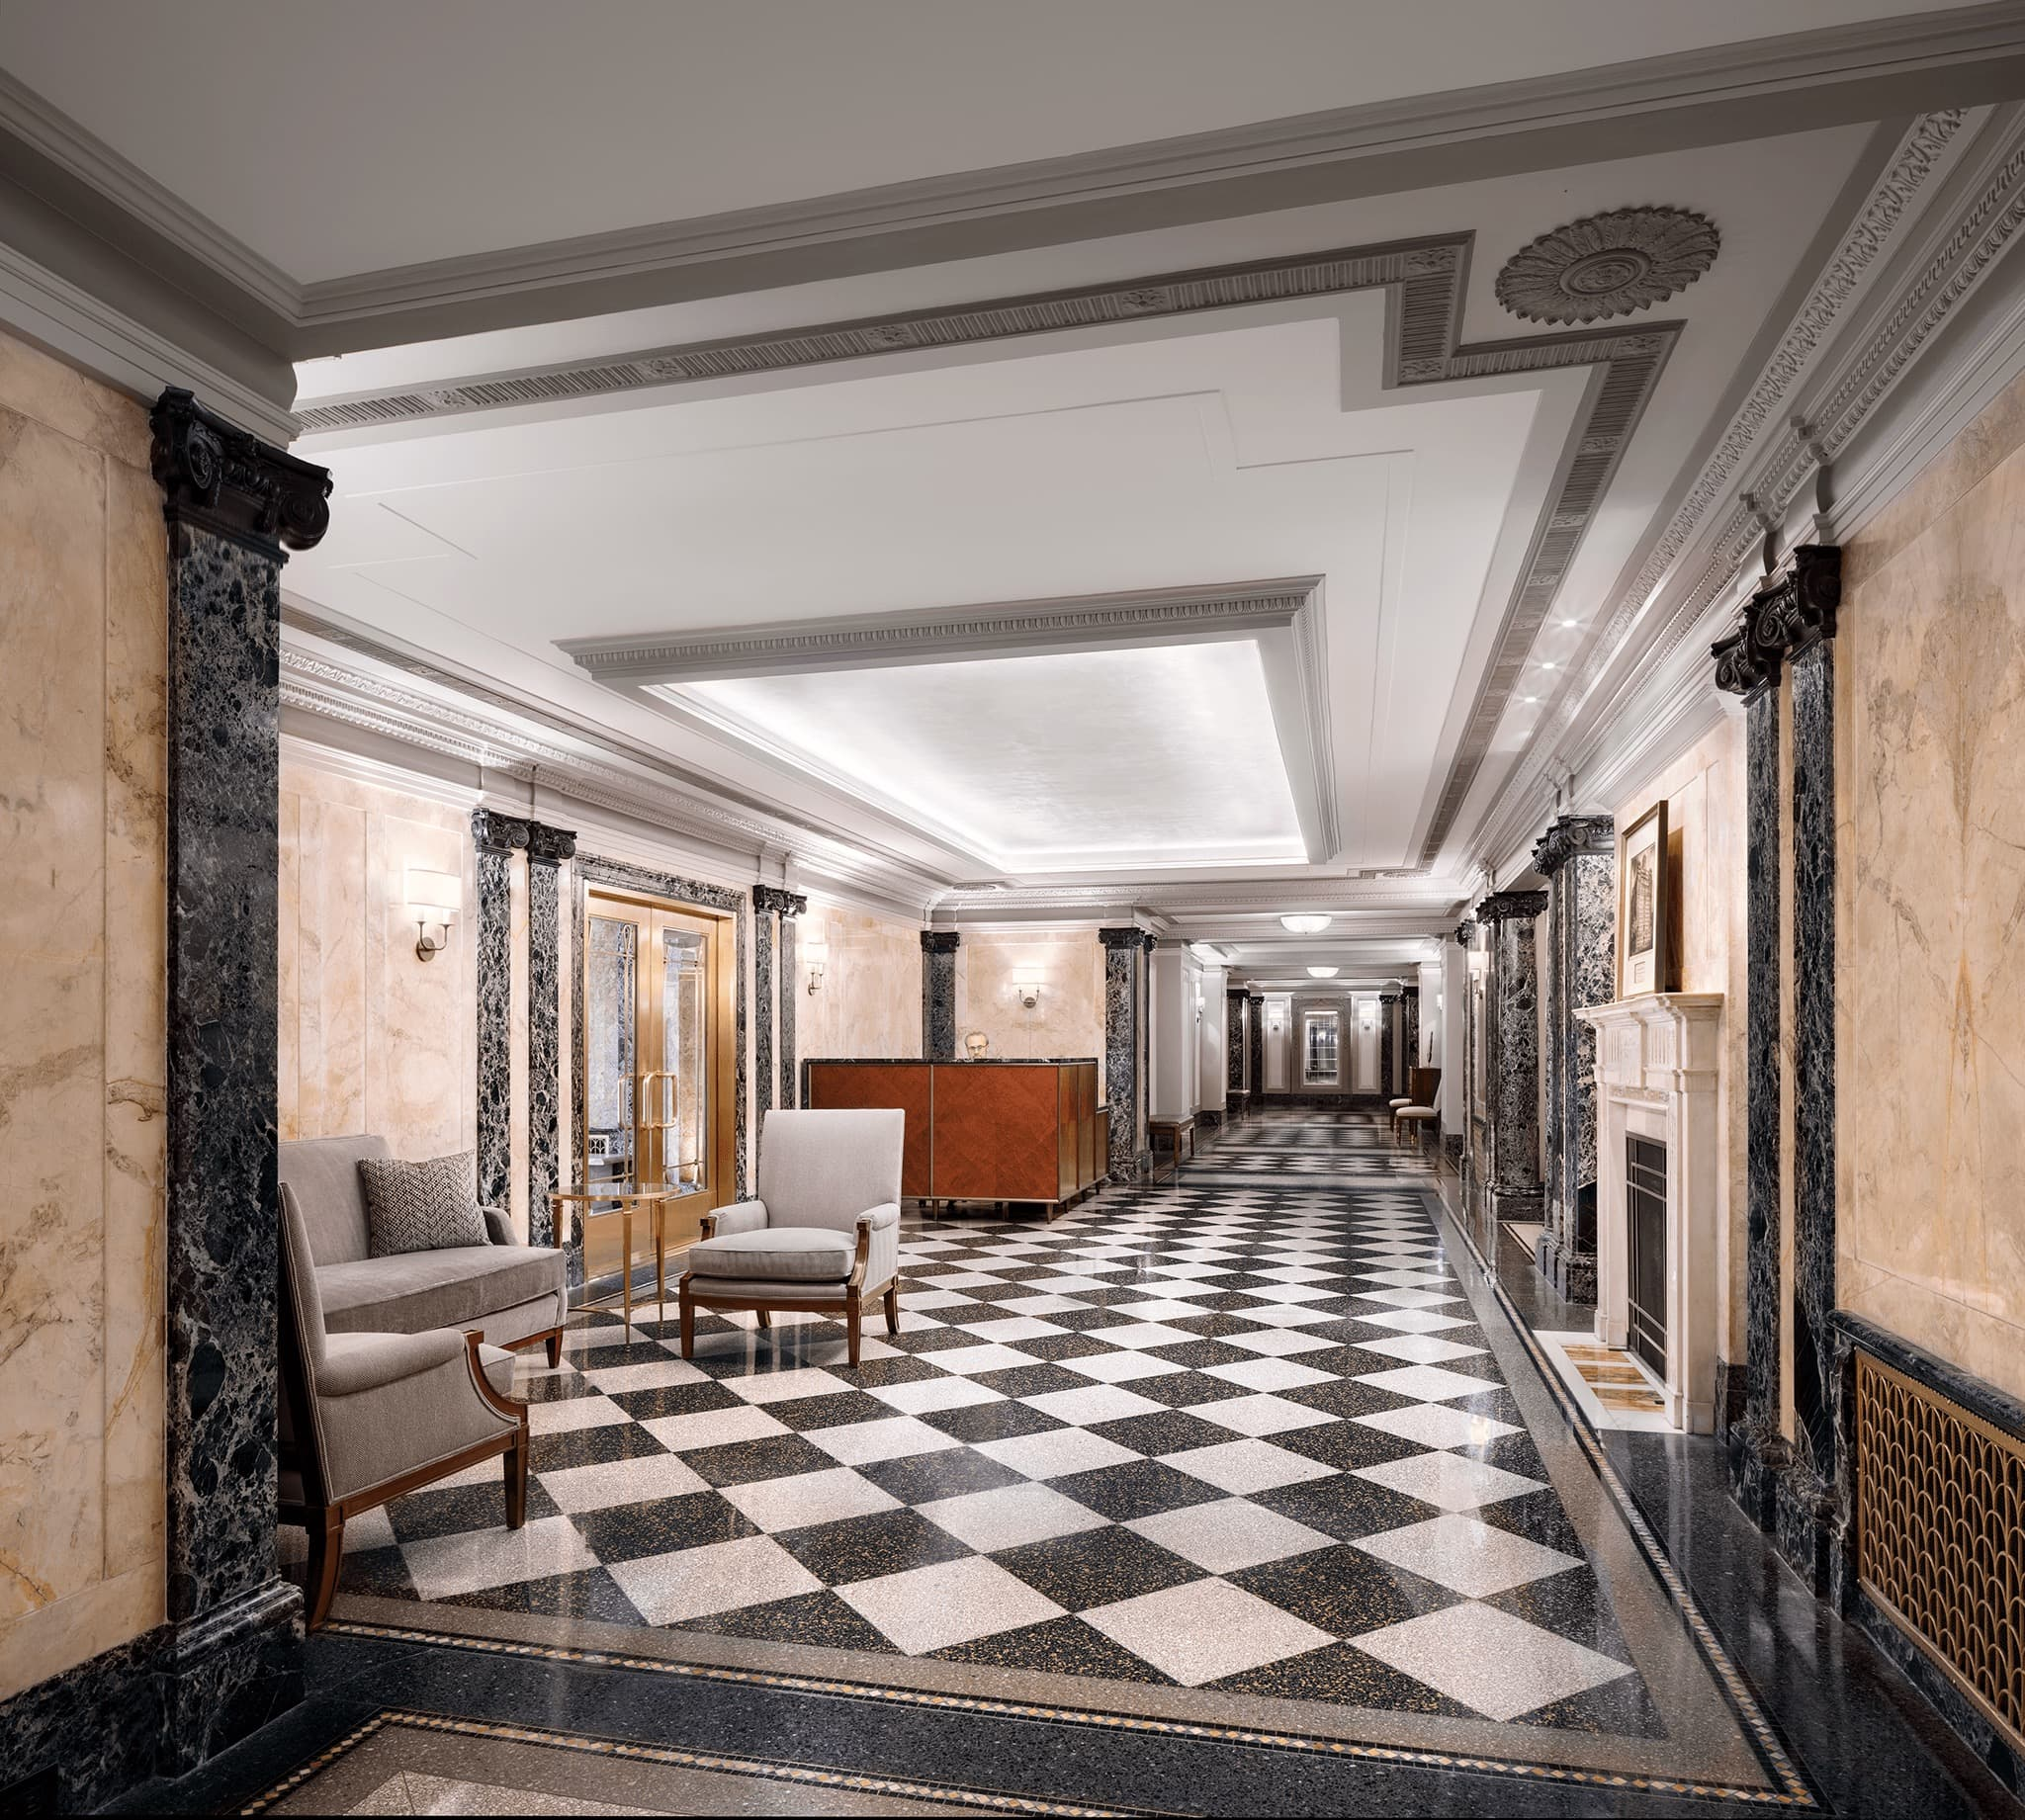 Central Park West lobby with checkered floor tiles.